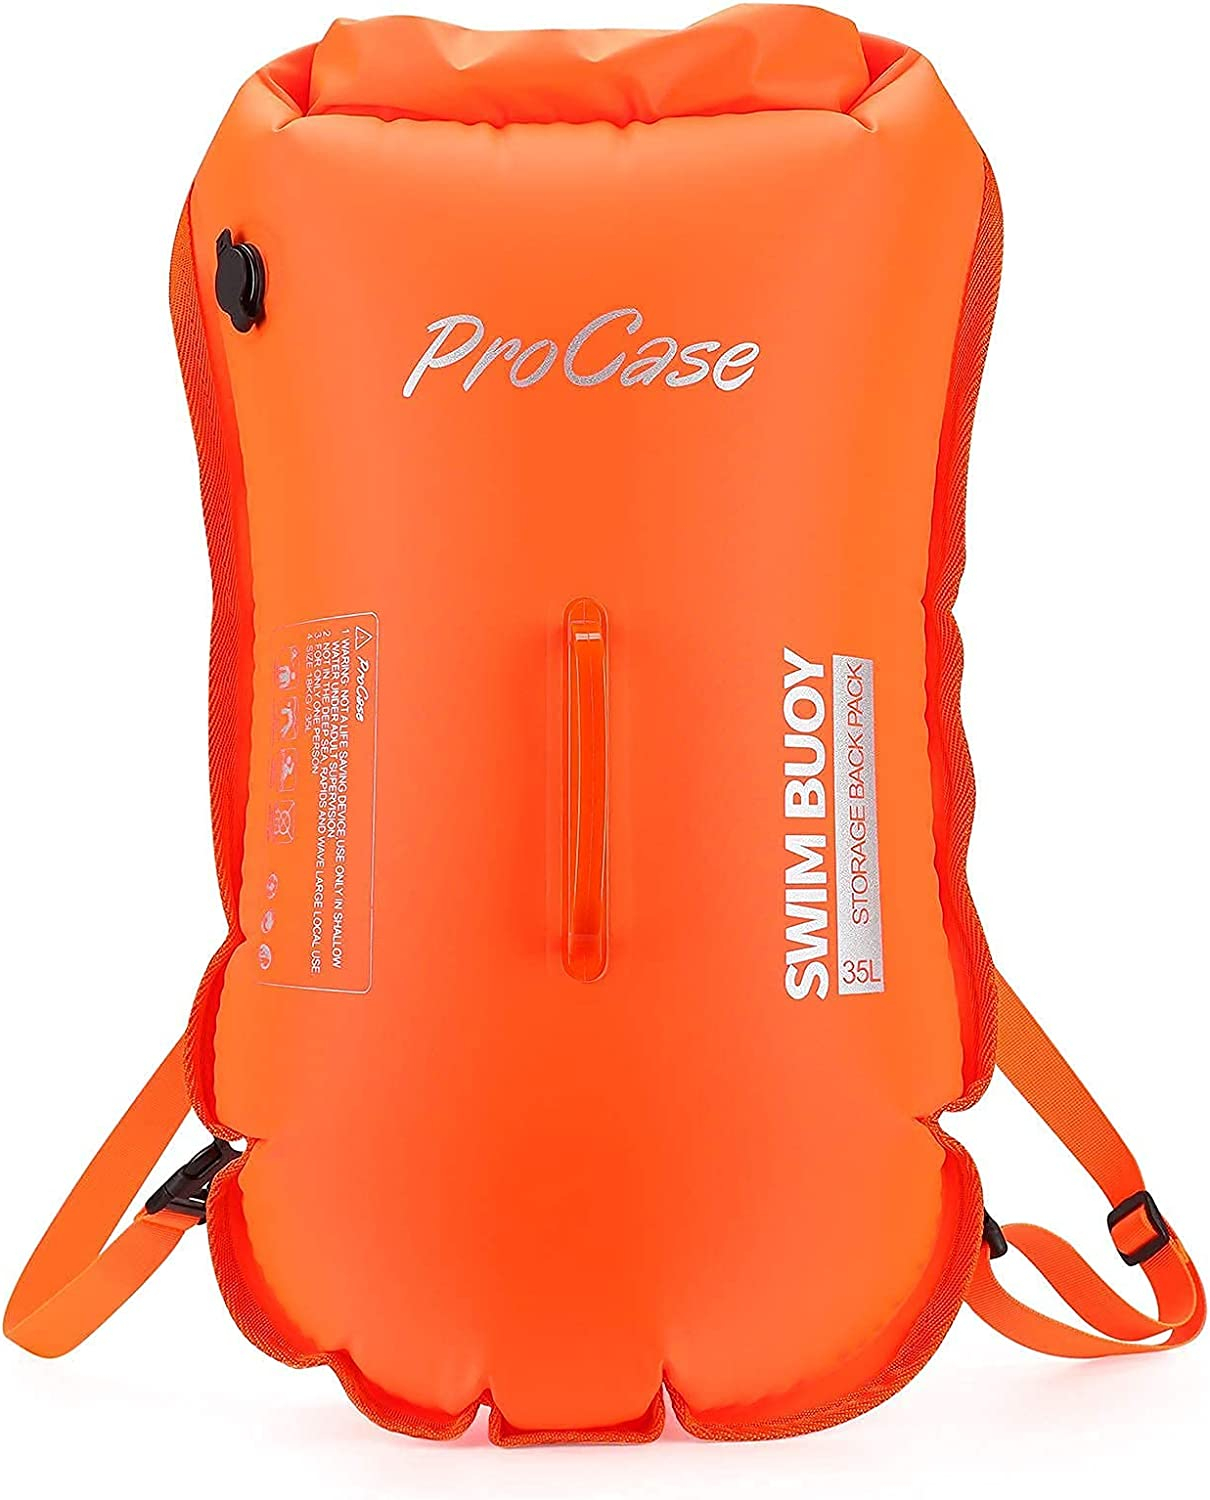 6 Pack ProCase Universal Waterproof Pouch Cellphone Dry Bag Bundle with 35L Waterproof Swim Buoy Backpack